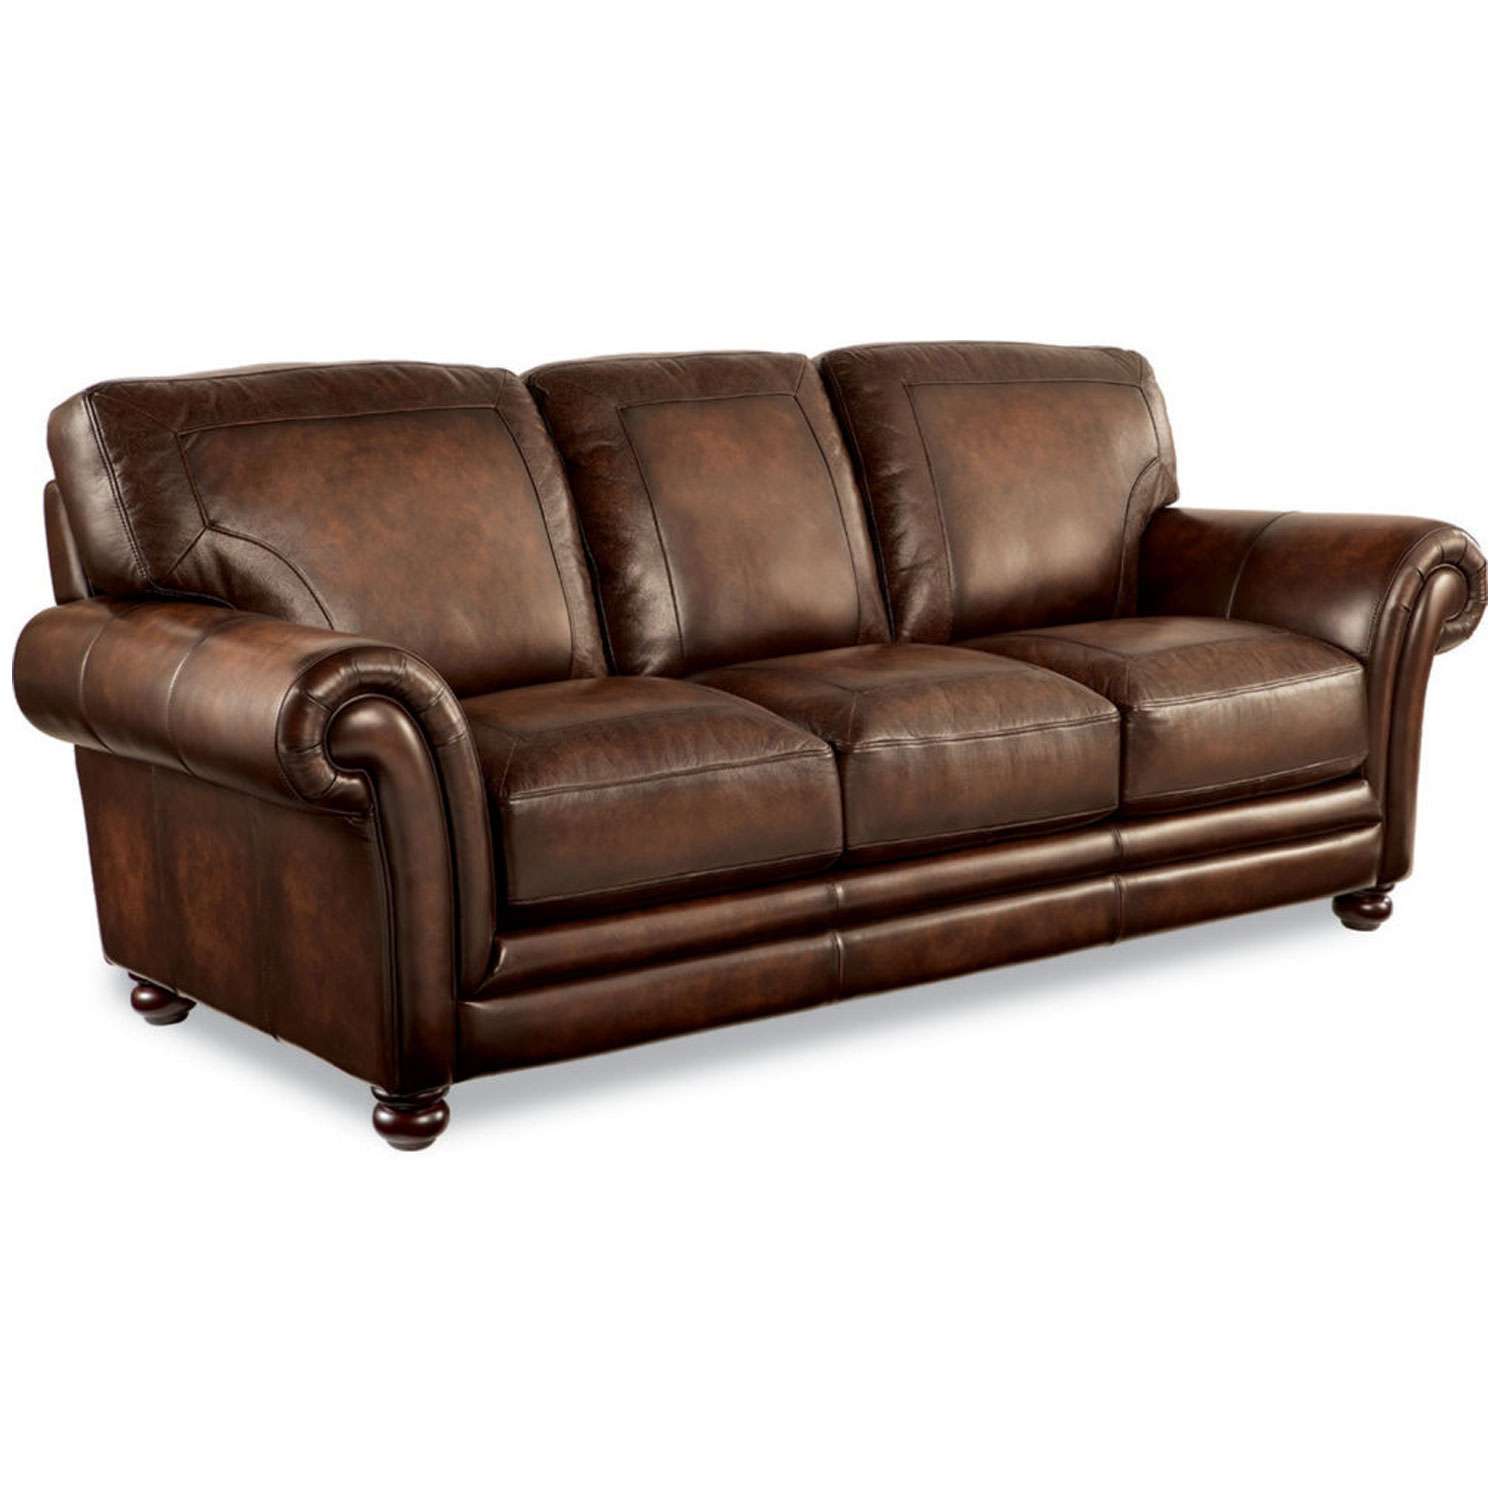 Leather Sofa La Z Boy Lazboy 710 805 William Signature Stationary Leather Sofa